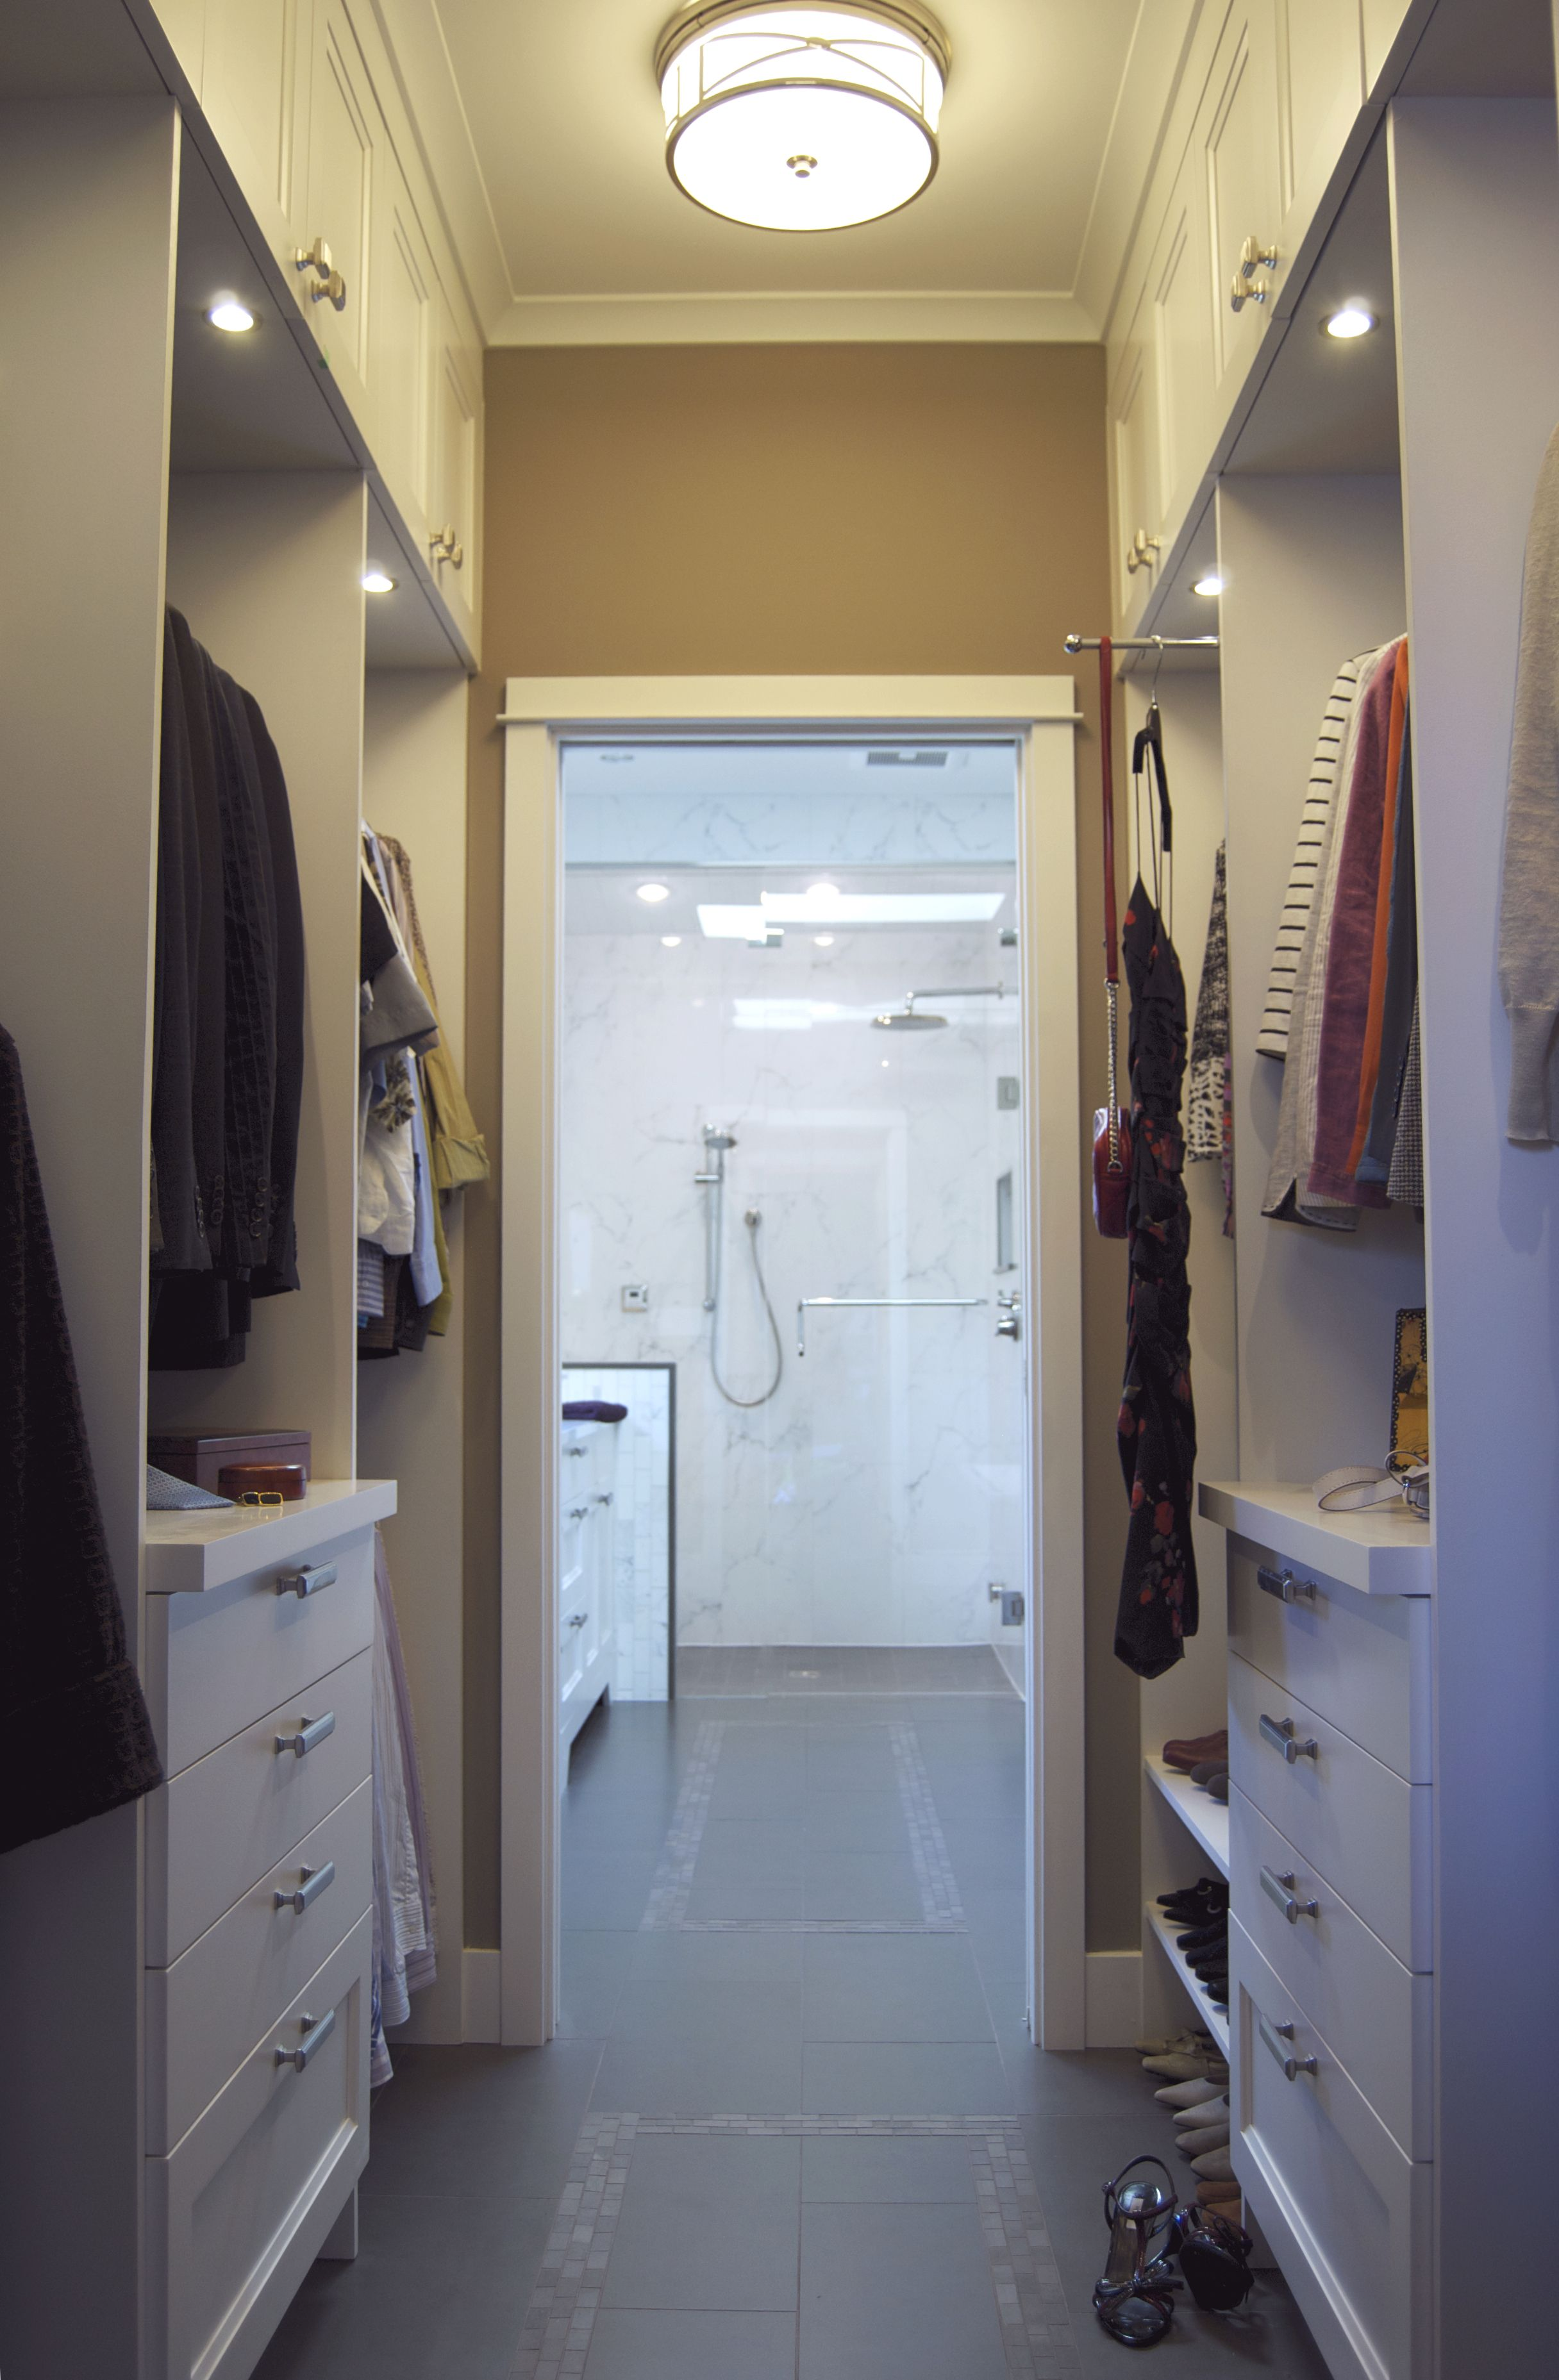 Corey klassen interior design dunbar closet for Master bathroom designs with walk in closets